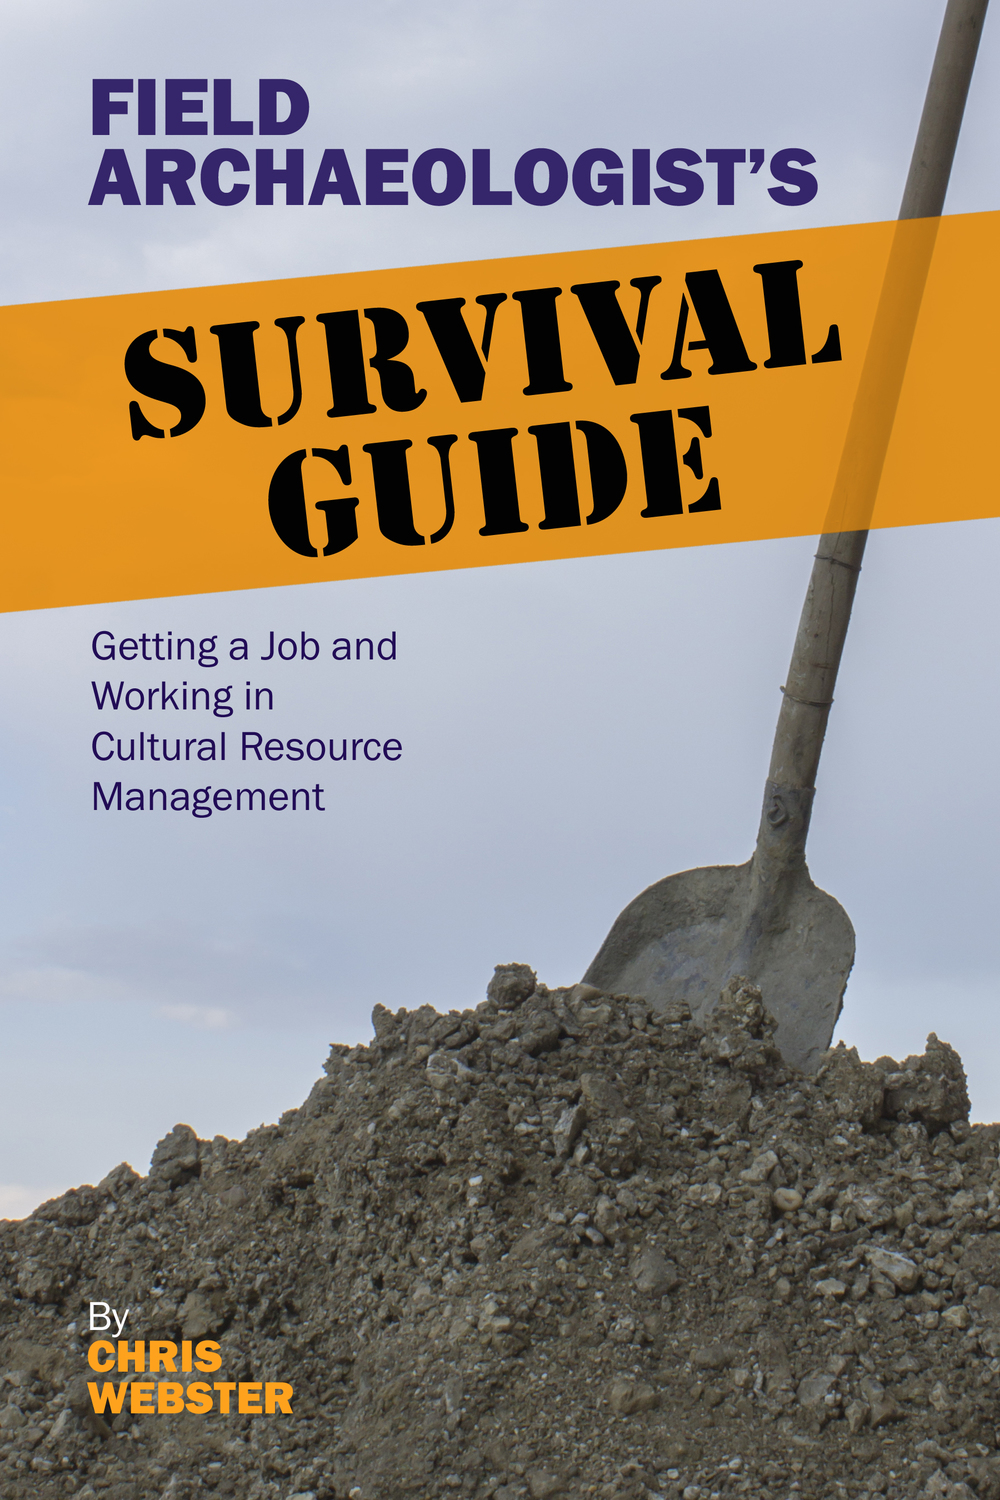 Webster_Archaeologist_SurvivalGuide_Cover300dpi.jpg